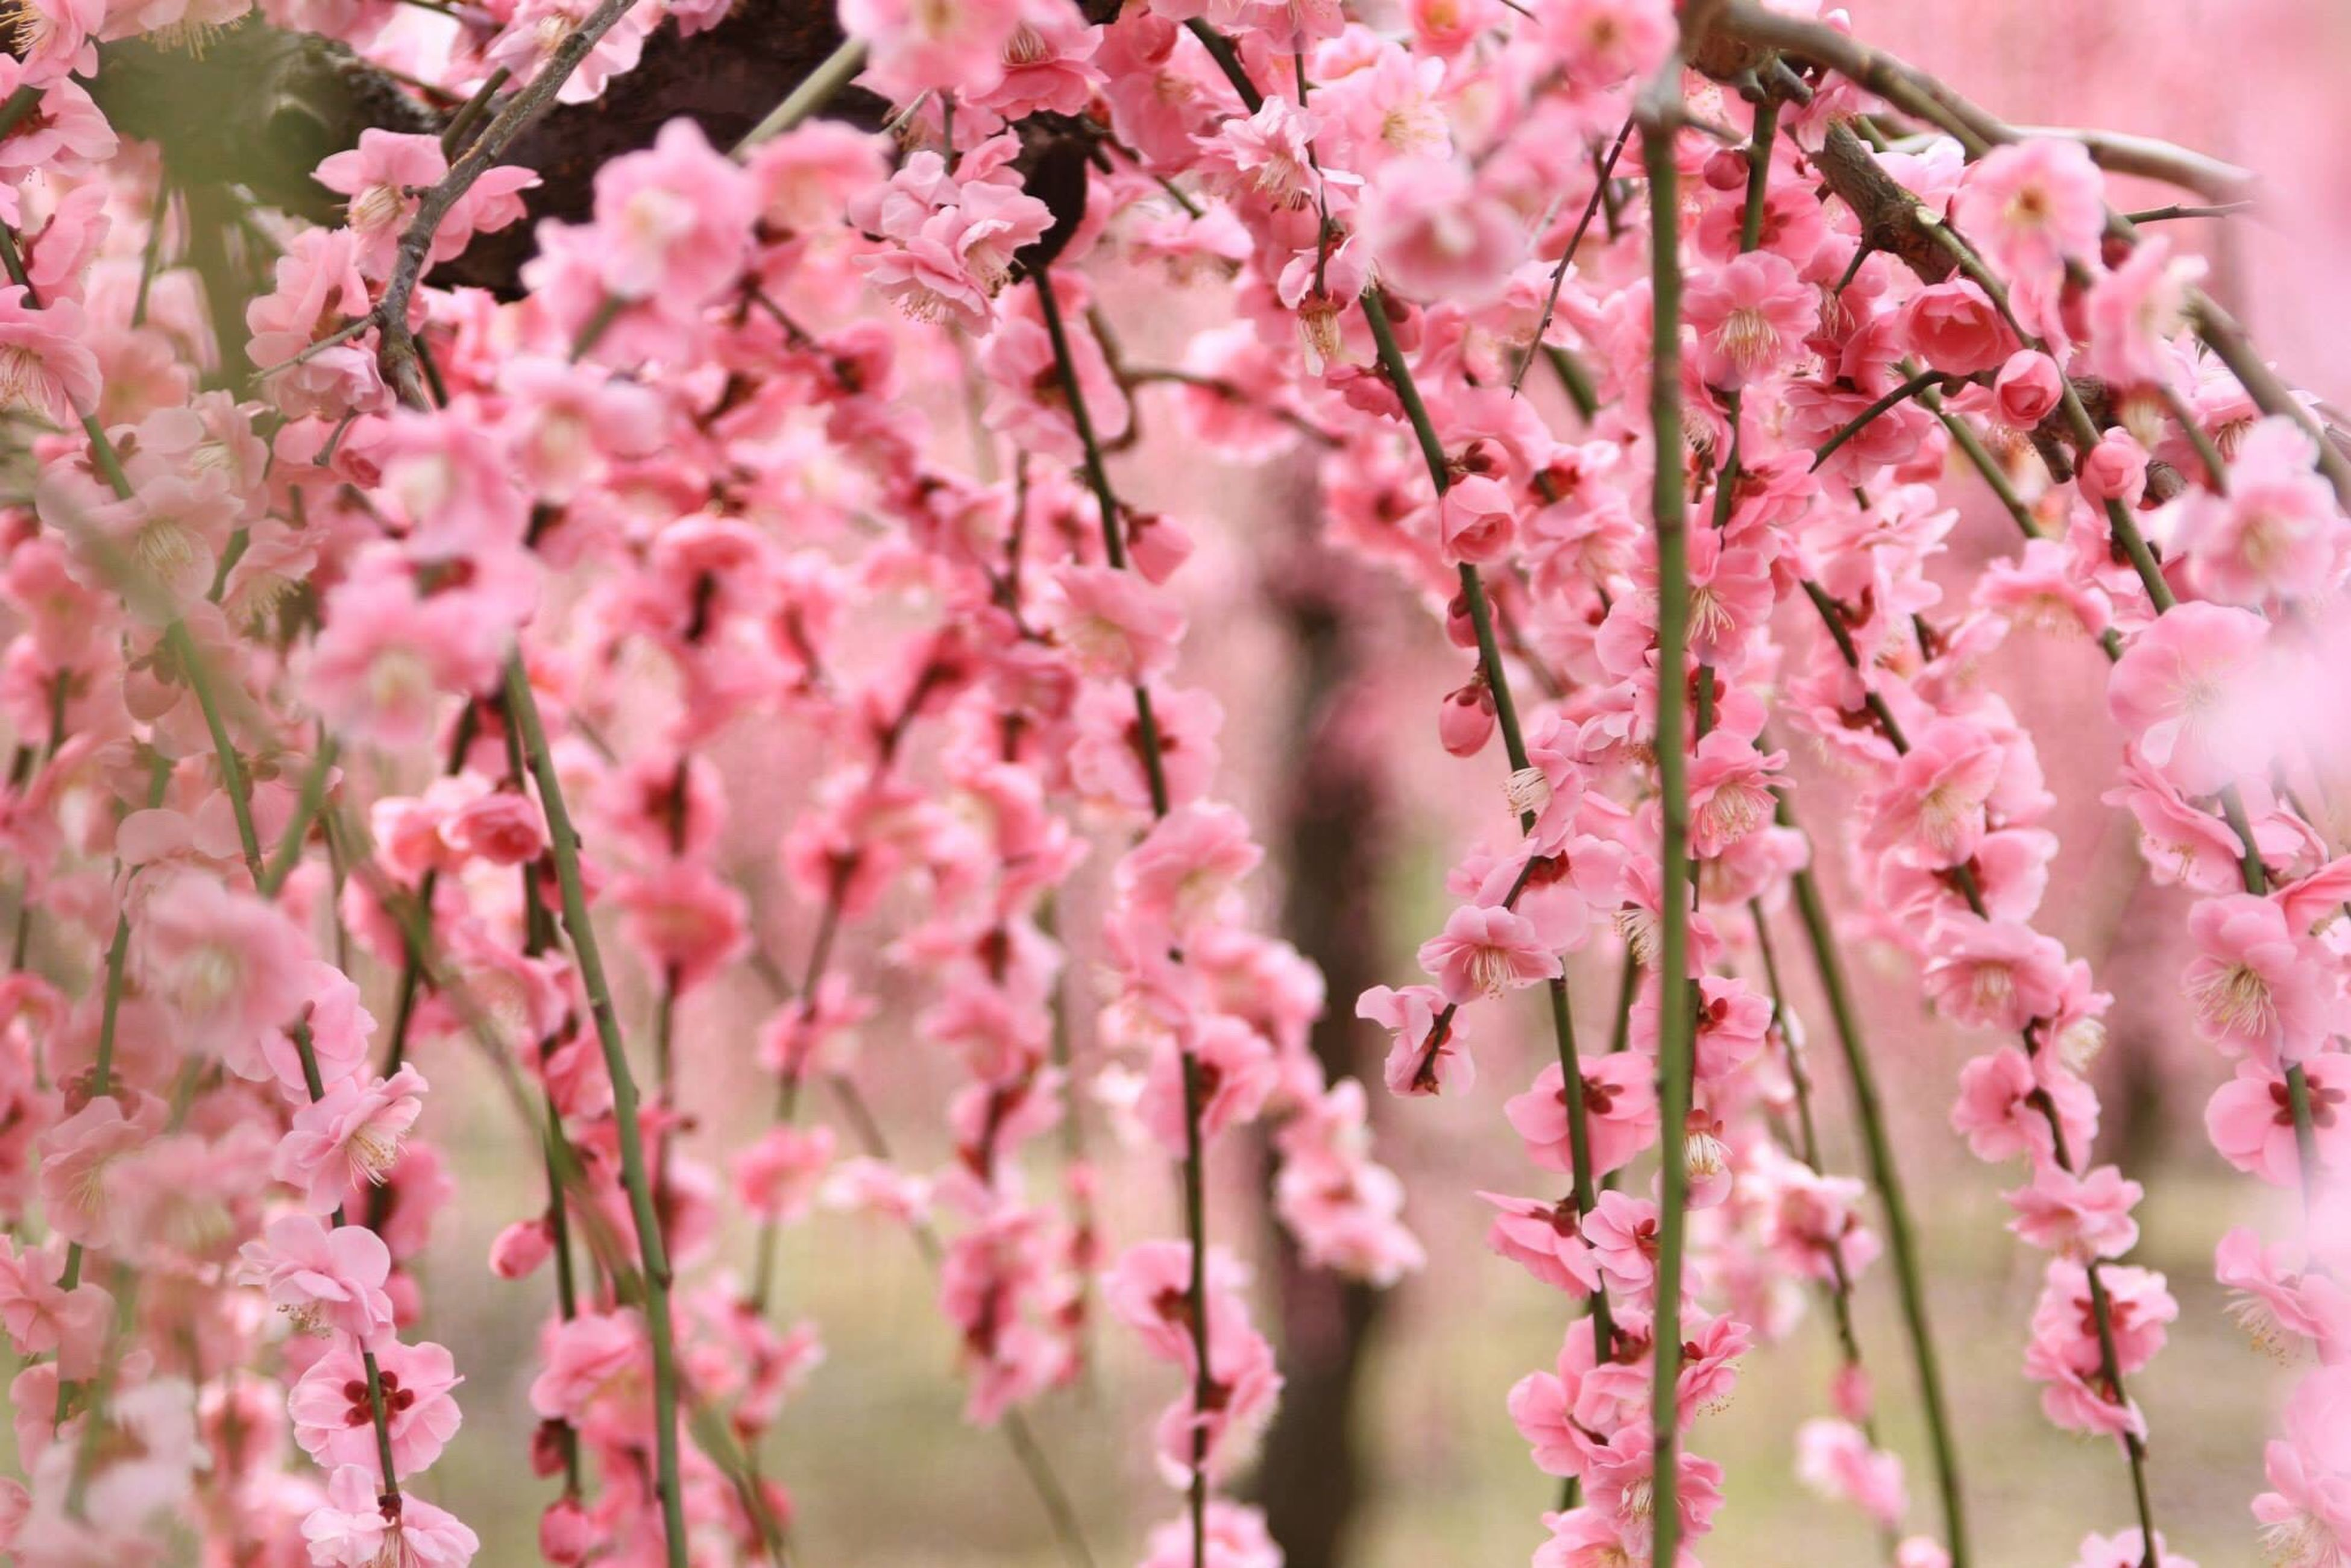 flower, freshness, pink color, growth, fragility, beauty in nature, branch, nature, tree, pink, blossom, close-up, cherry blossom, petal, cherry tree, focus on foreground, in bloom, blooming, twig, springtime